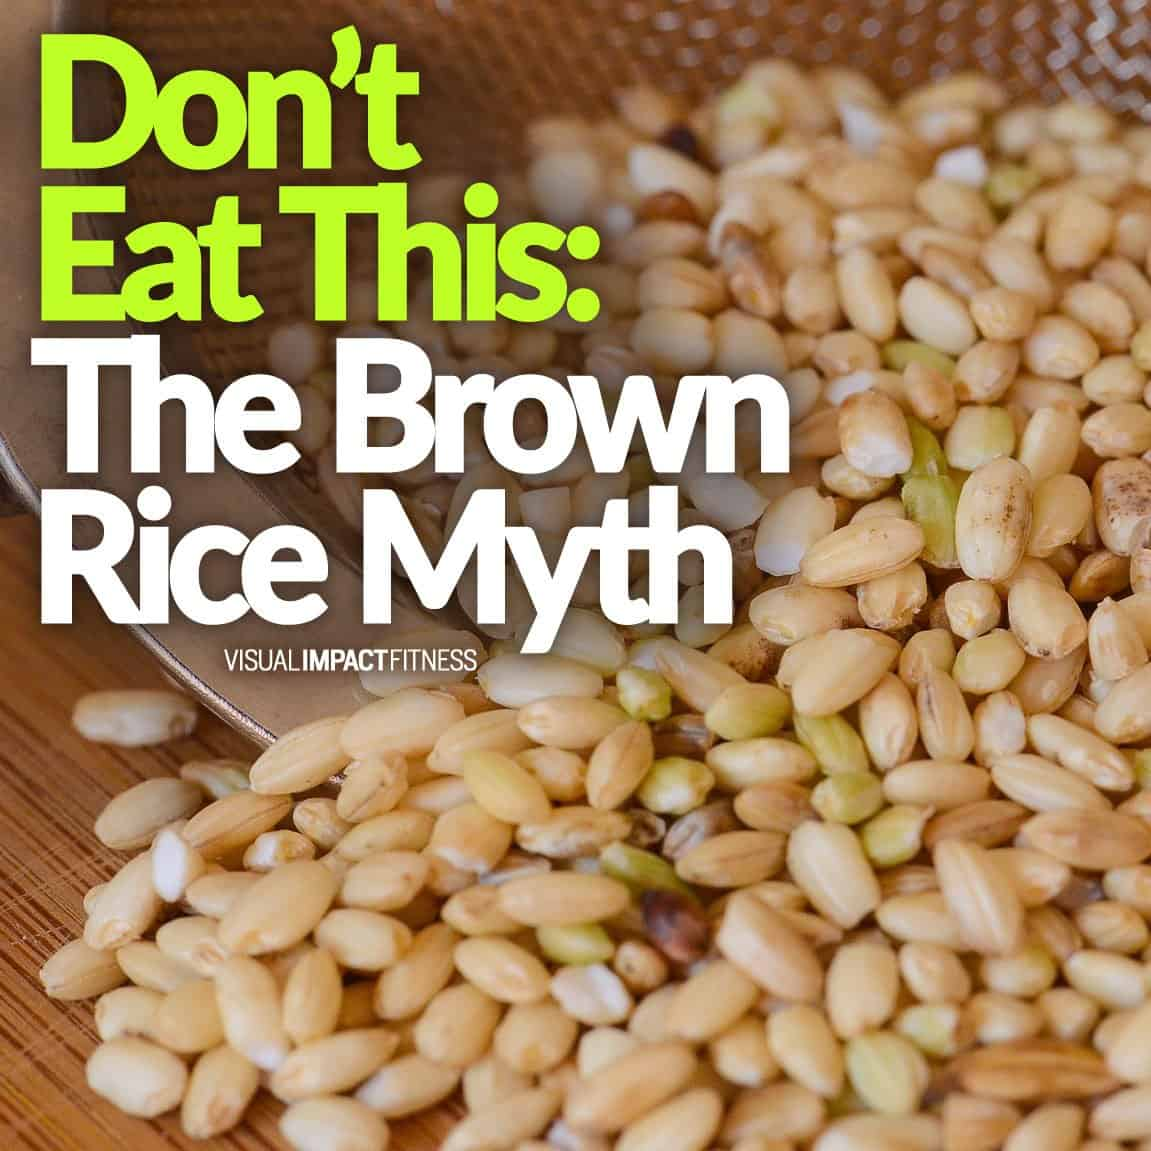 Don't Eat This The Brown Rice Myth